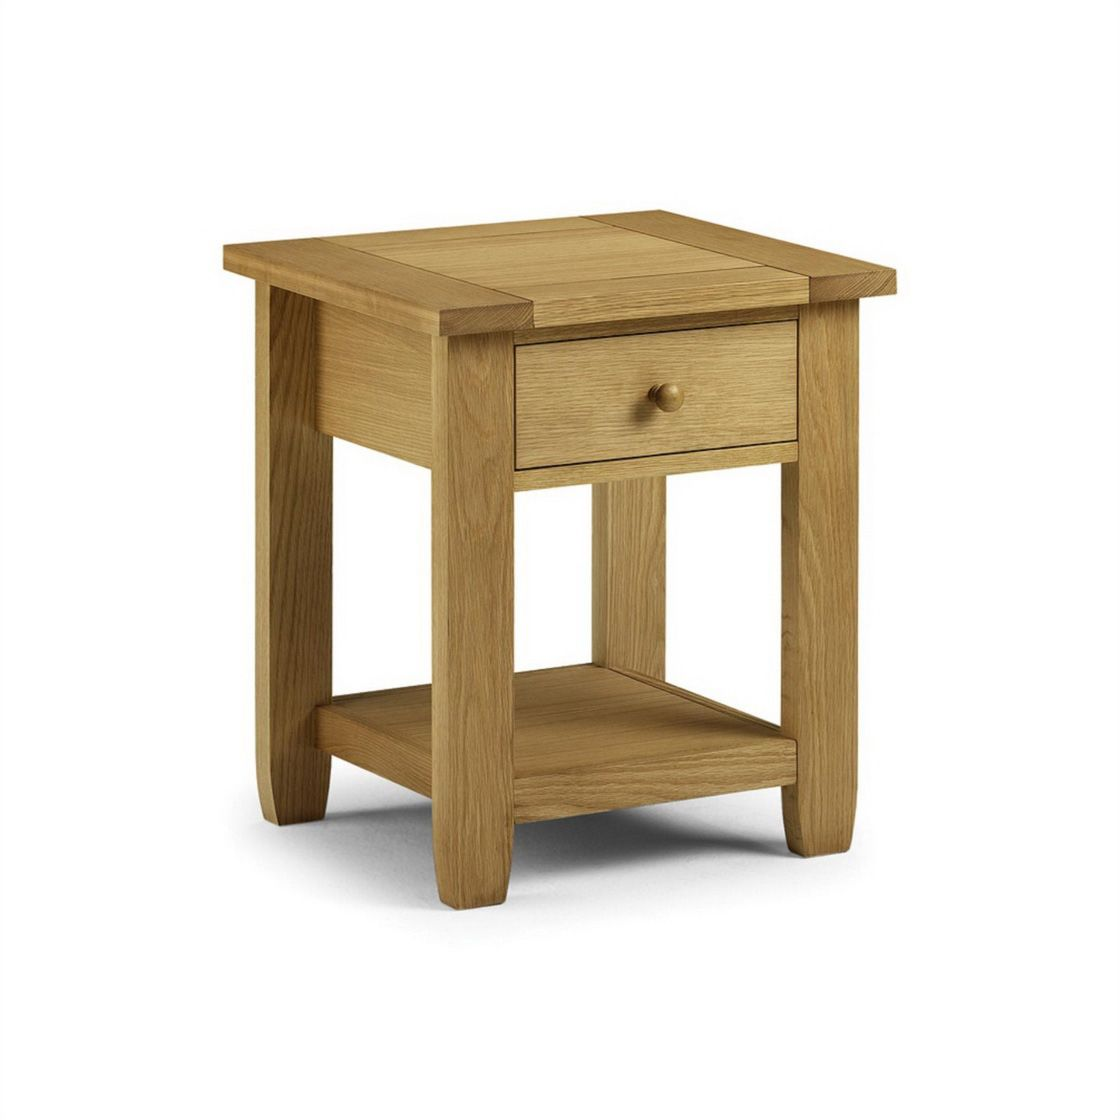 Furniture, The Extraordinary Light Brown Colour In The Perfect Julian Bowen  Lyndhurst Single Drawer Bedside Table: The Simple Brown Narrow N.